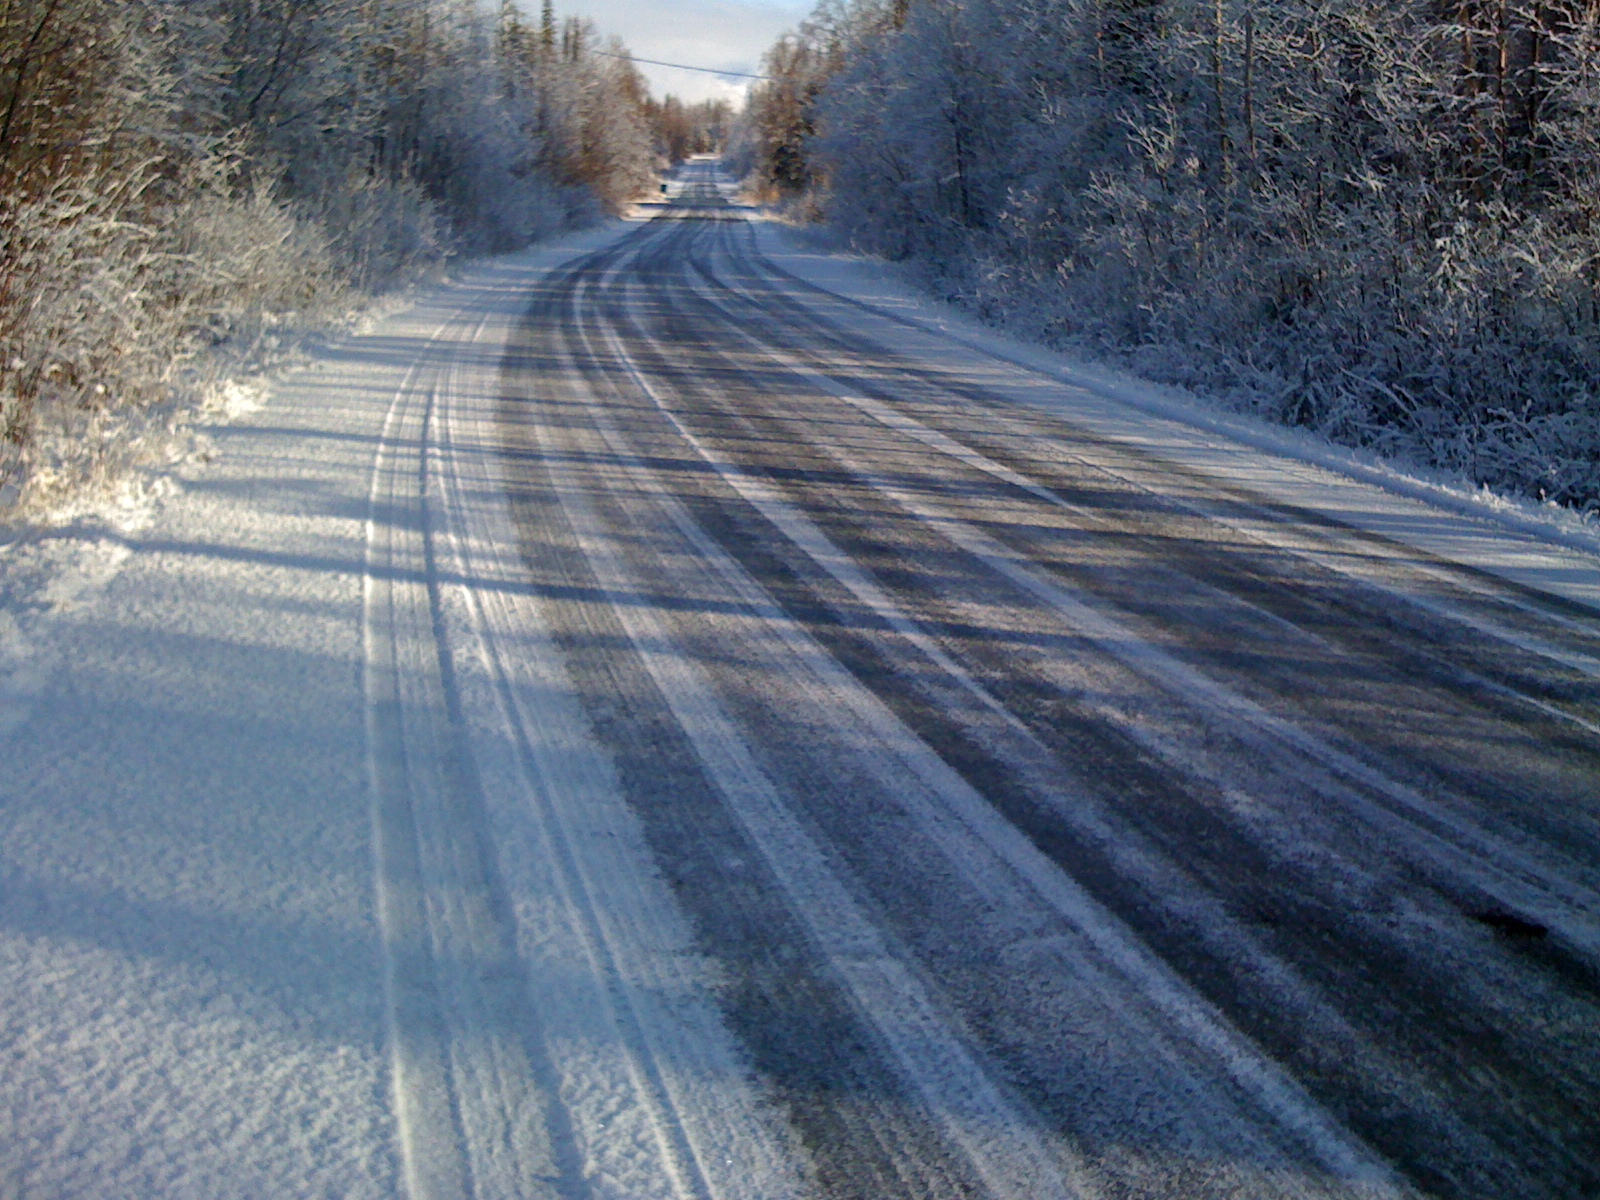 Wasilla, Alaska side roads - Ice and snow for the winter.